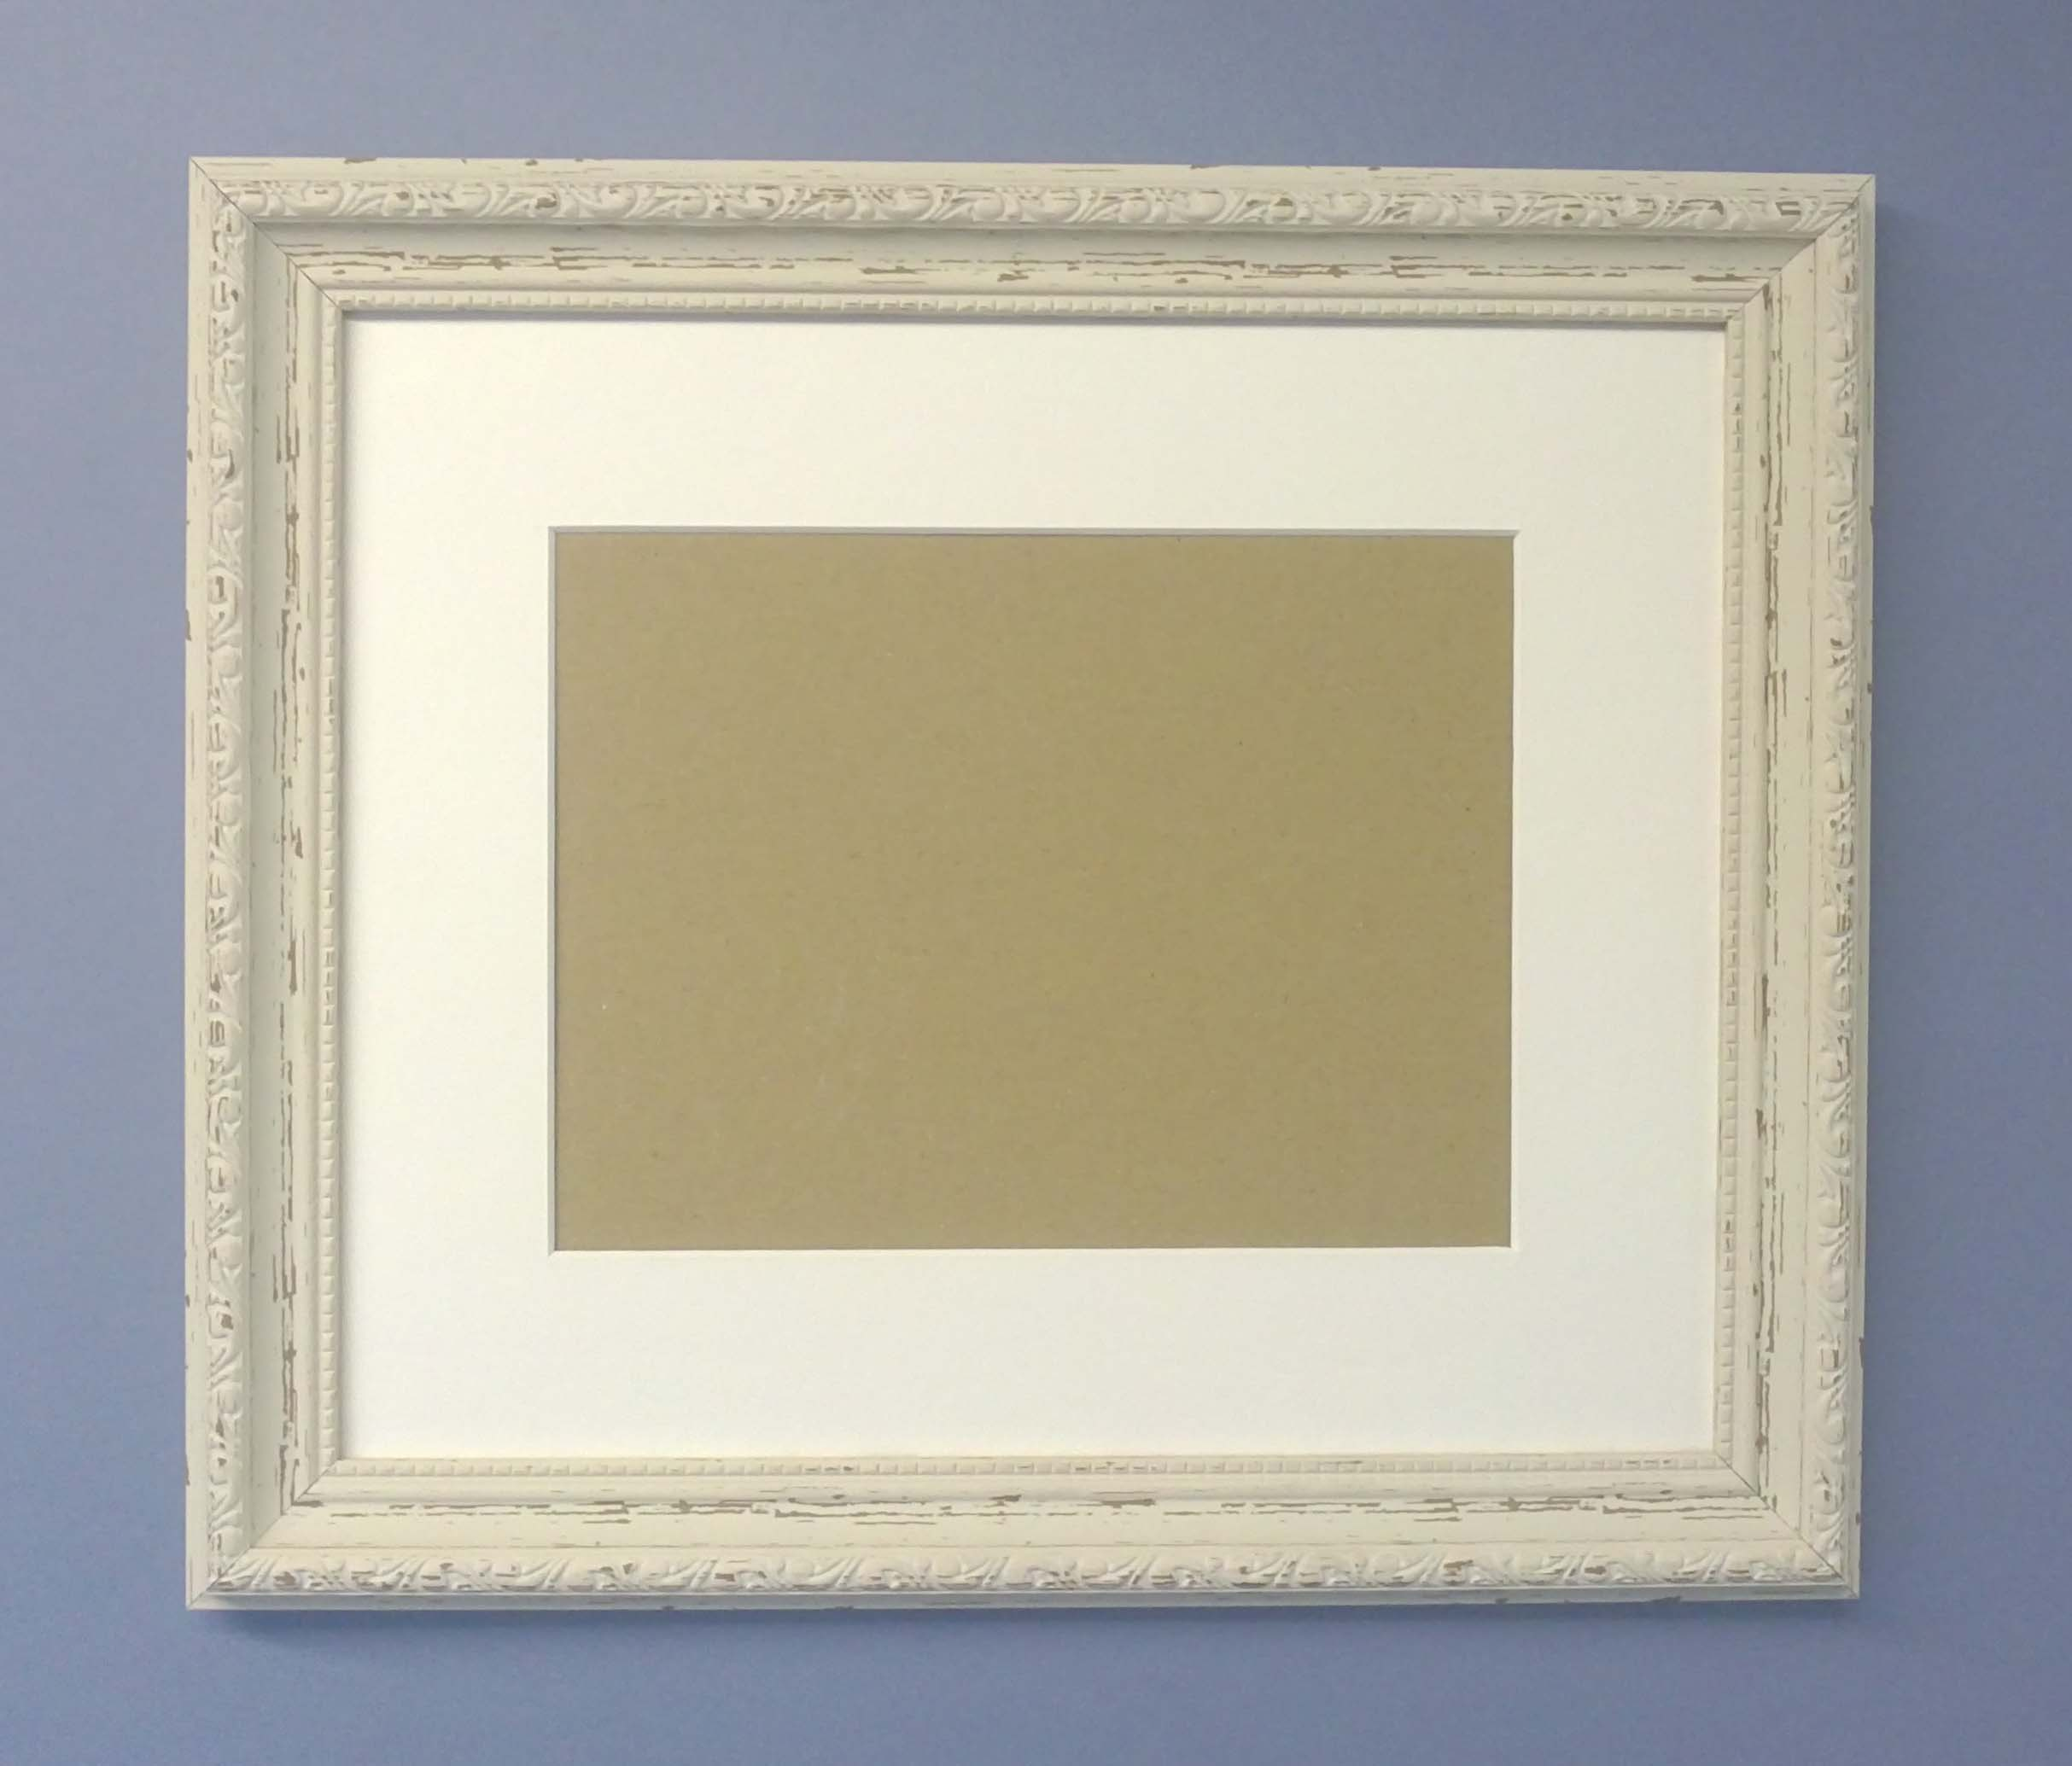 CHIC POLYMER FRAME COMPLETE WITH A SOFT WHITE COLOURED ACID FREE WHITE ...